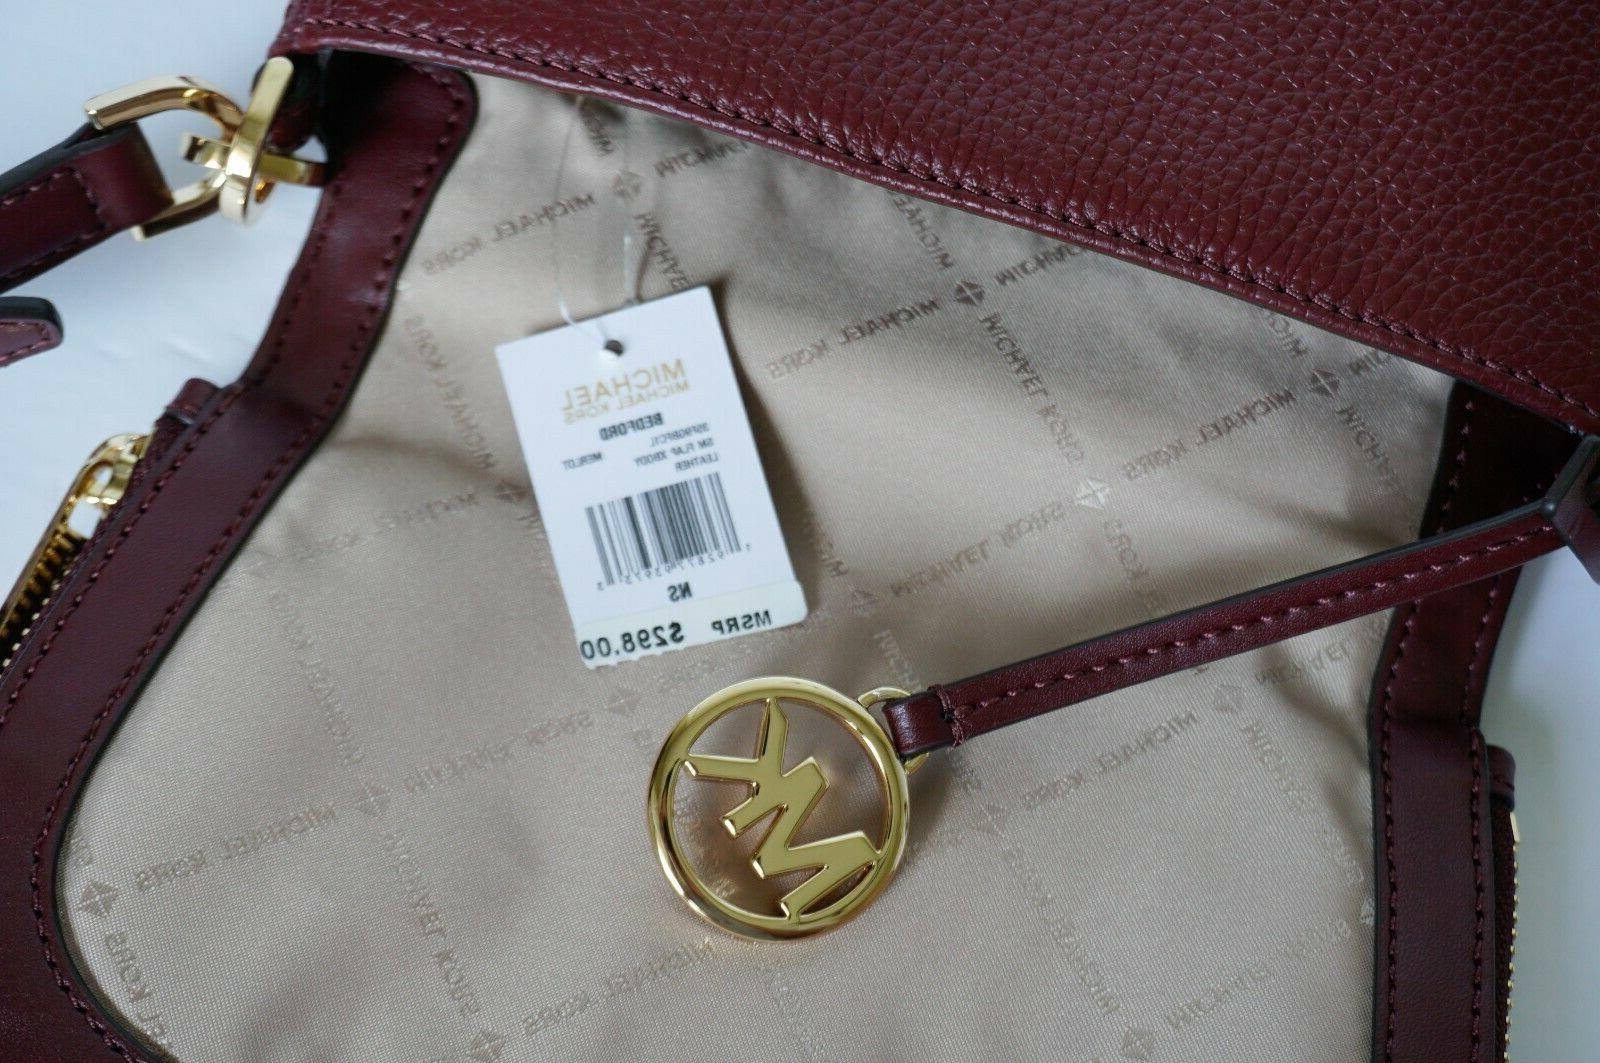 NWT Small Flap Crossbody Pebbled Leather Bag